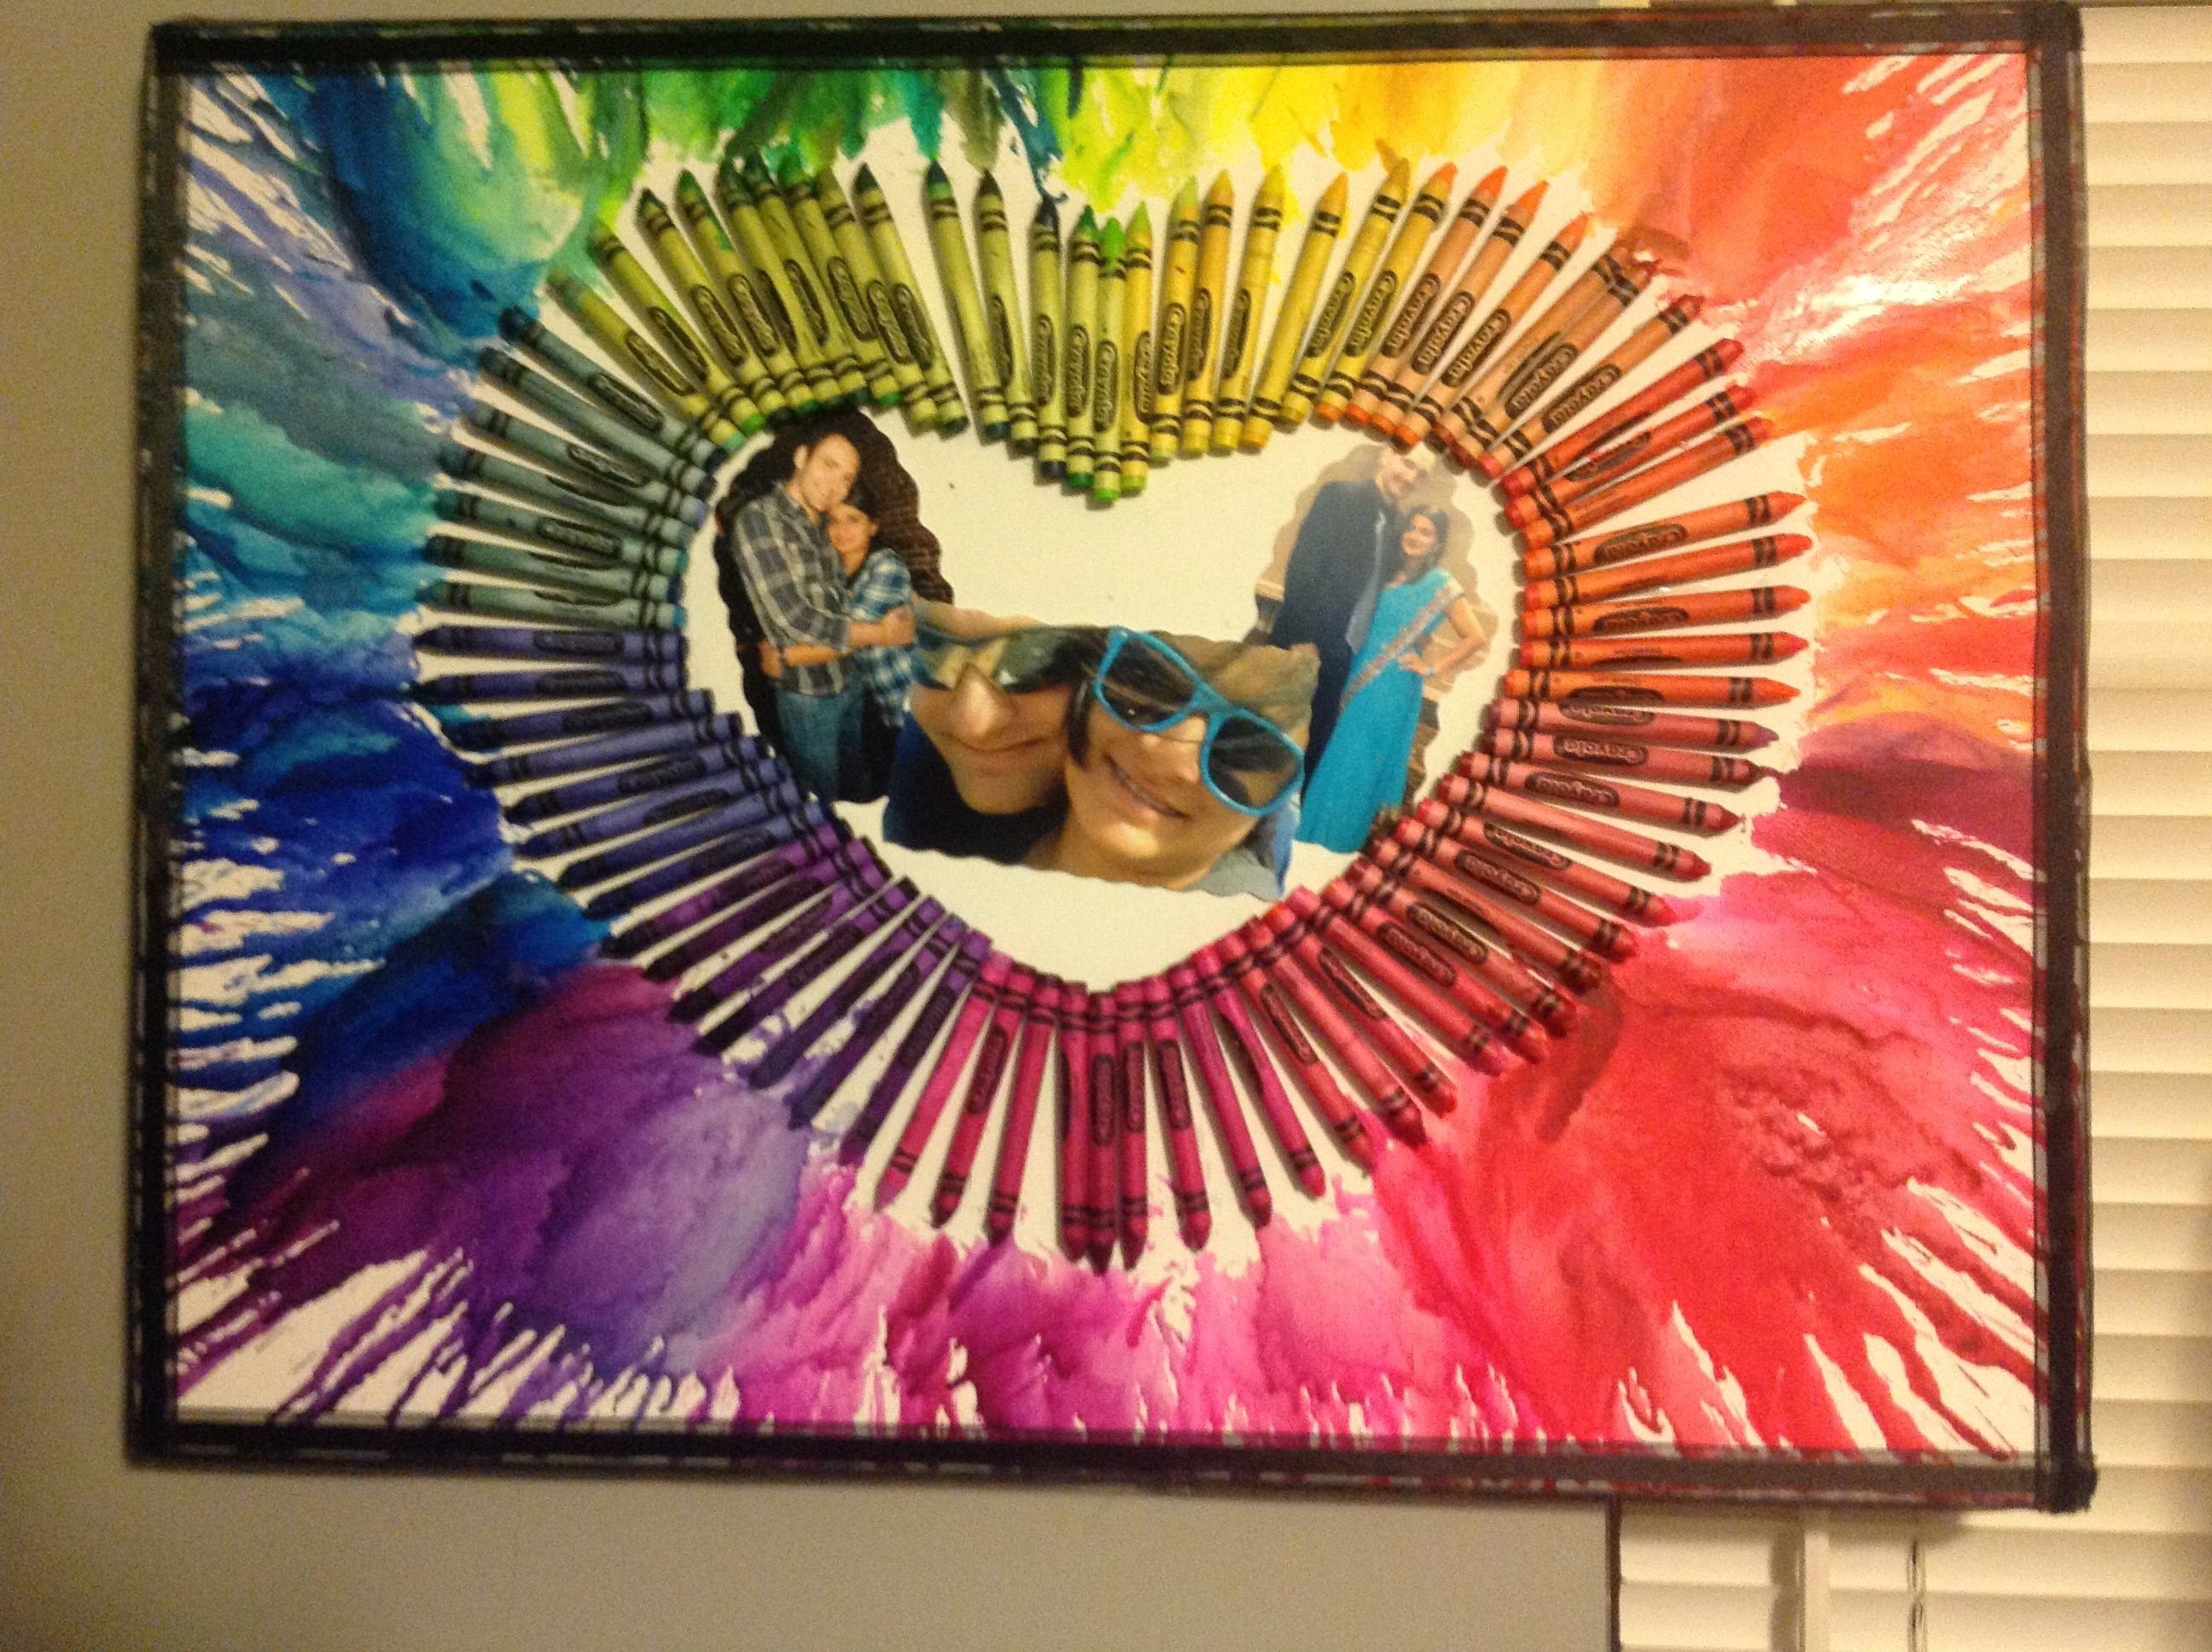 Diy  Melted Crayon Art With Pictures In The Middle